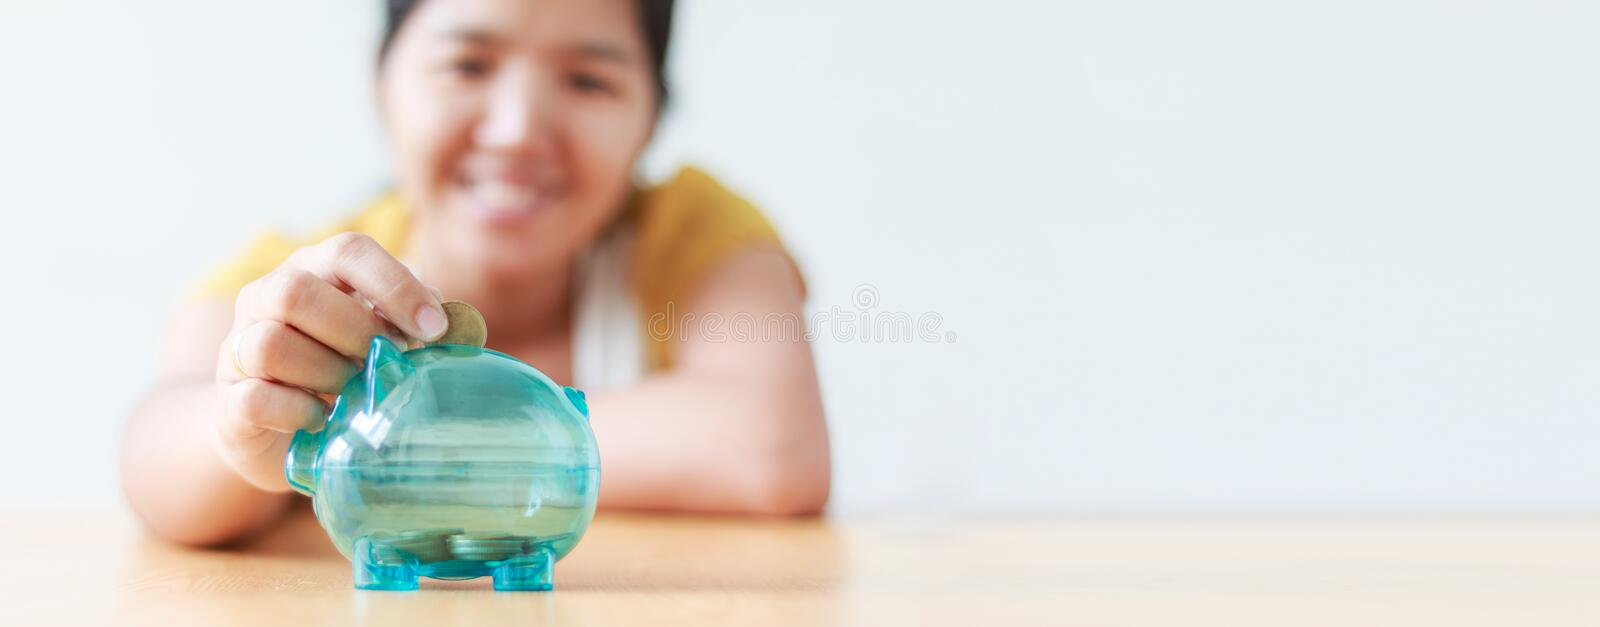 Asian woman putting money coin in to clear piggy bank metaphor s royalty free stock image